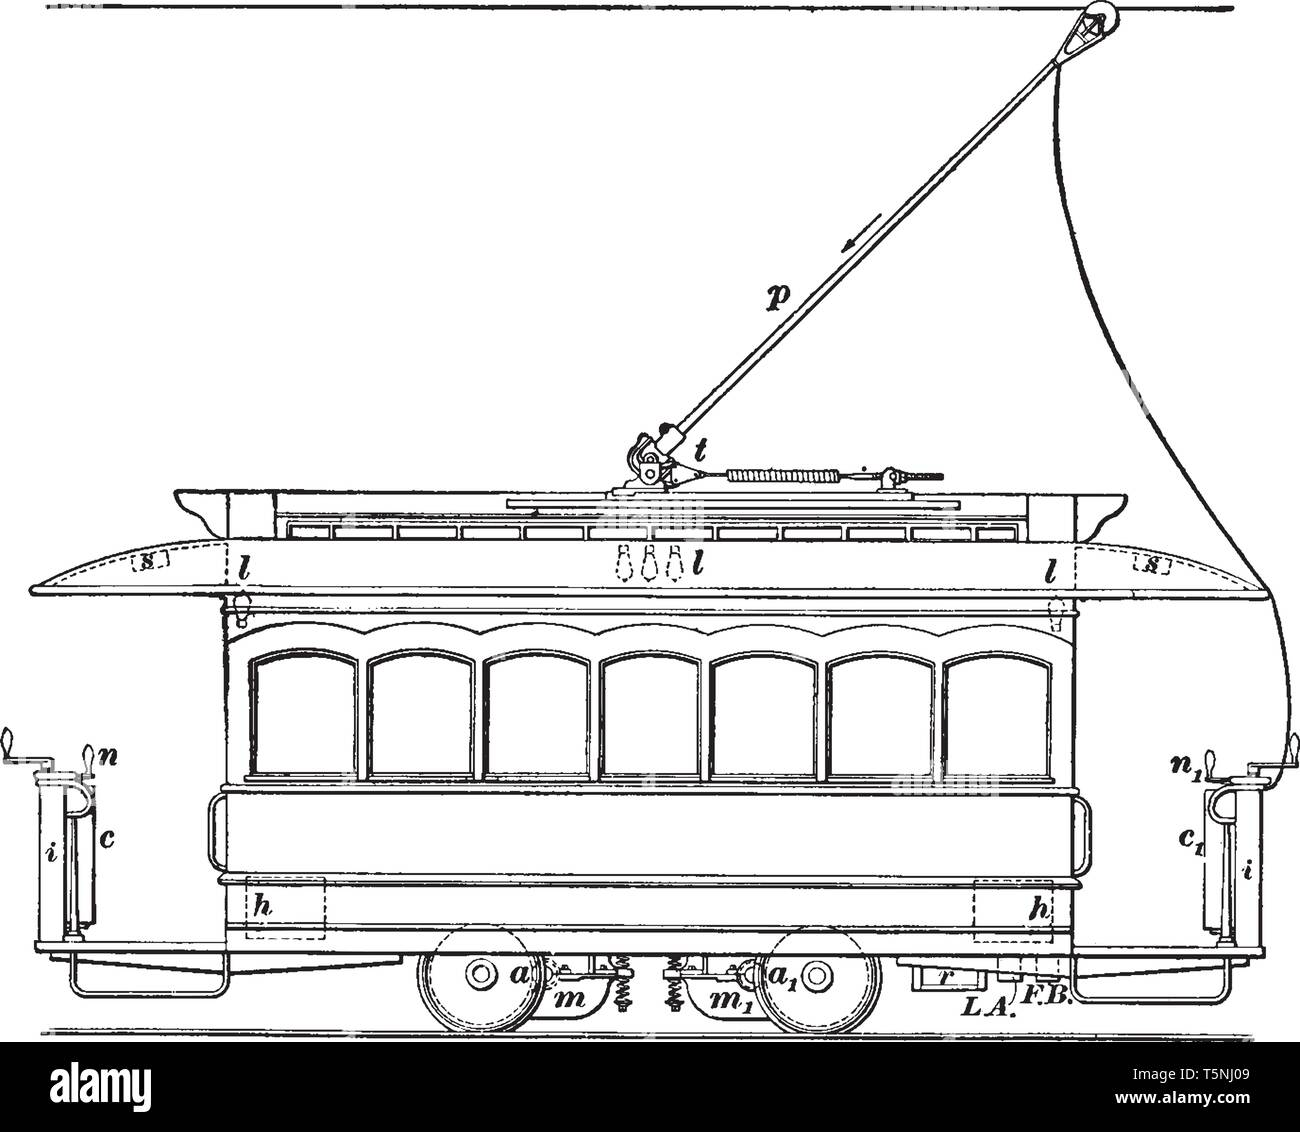 Trolley Equipment in which two motors are held and geared to the axles, vintage line drawing or engraving illustration. - Stock Vector